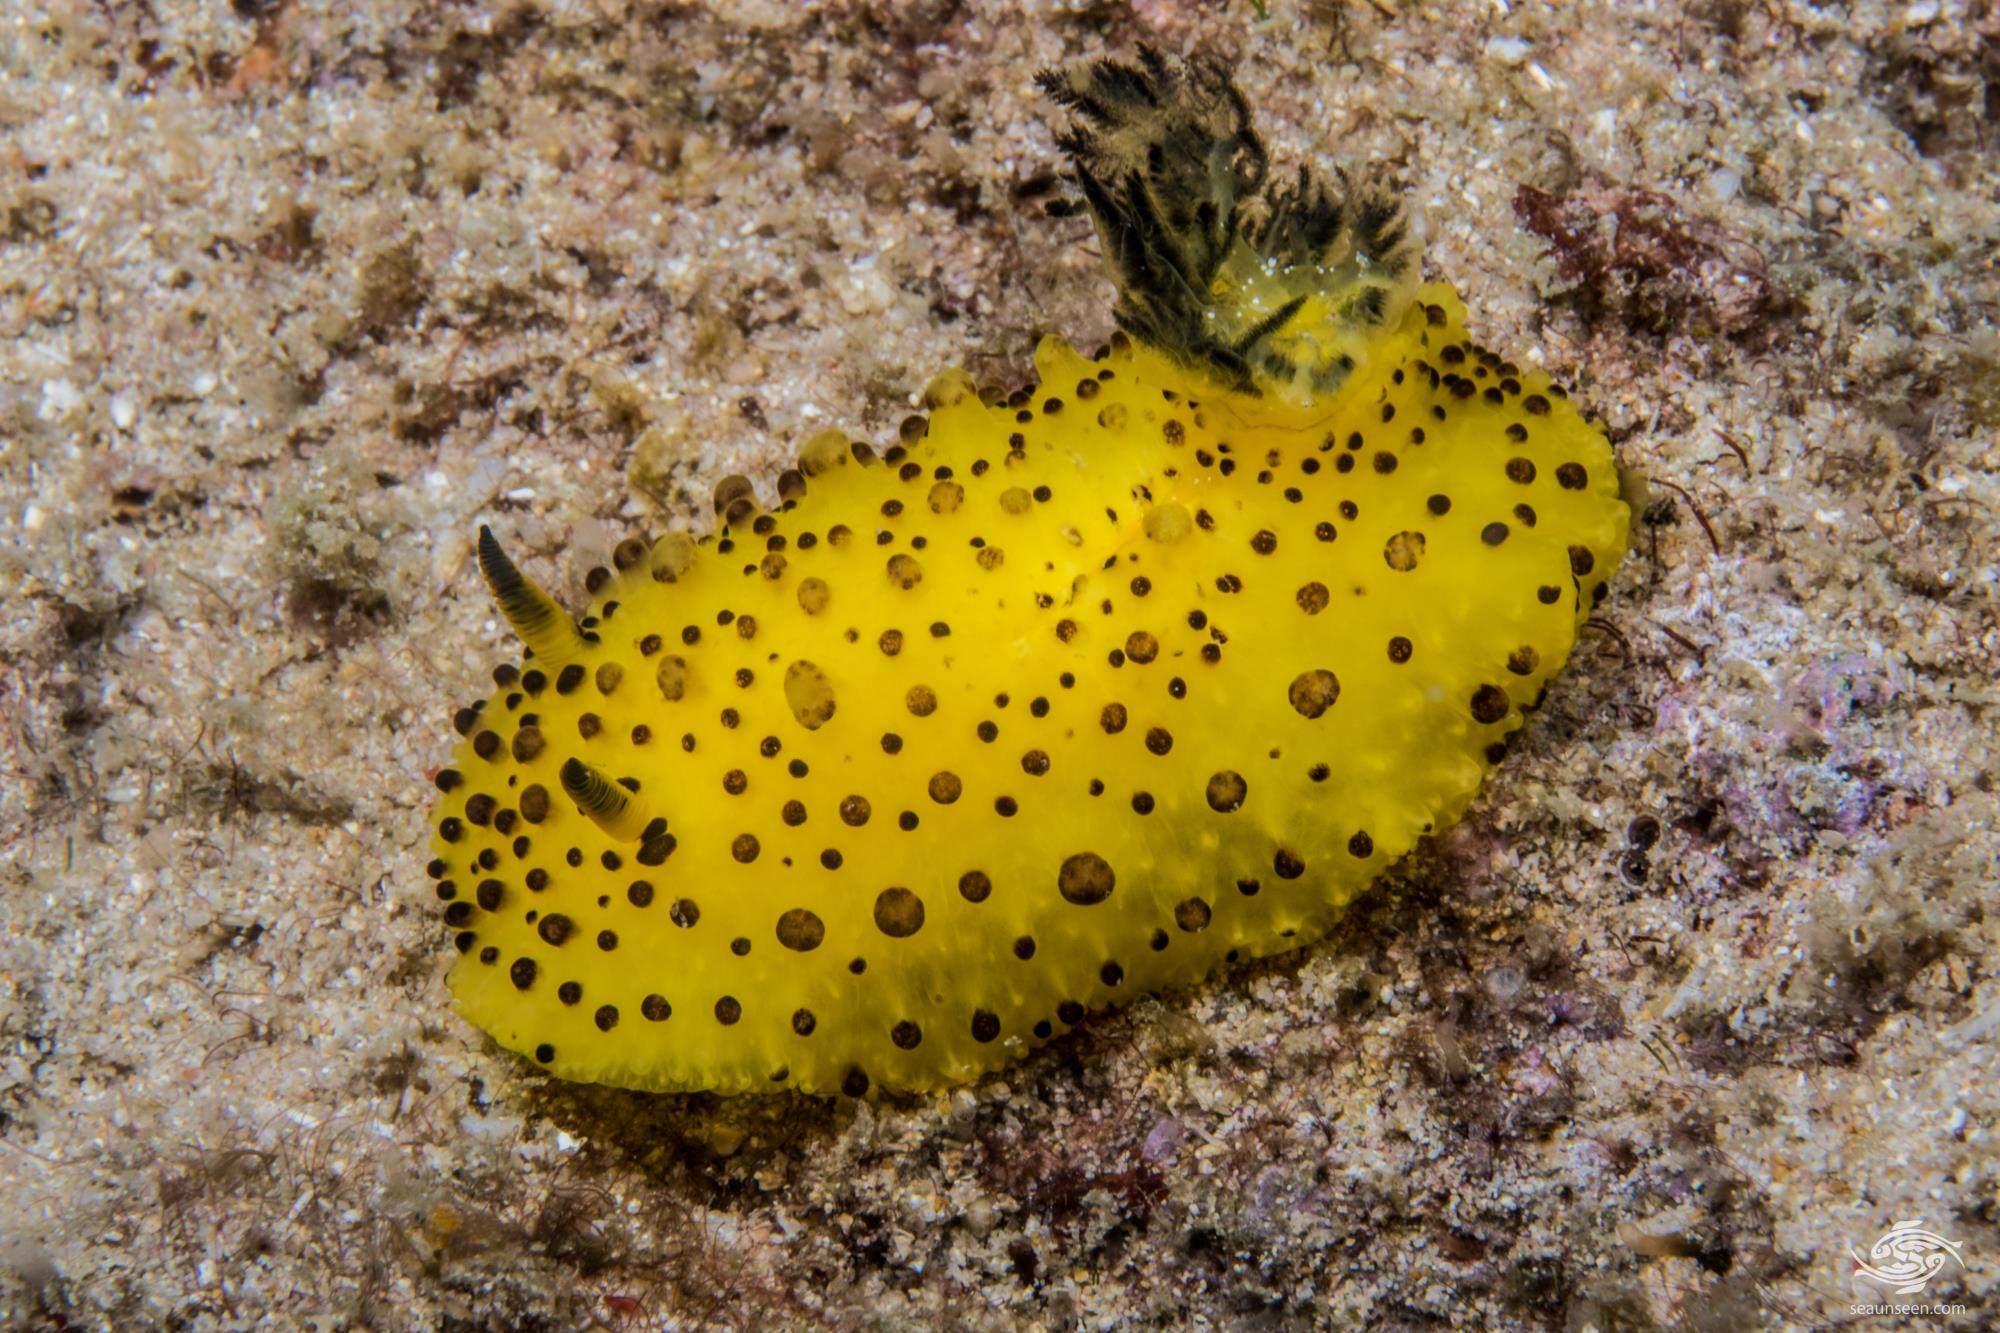 Doris ananas also known as the Pineapple Nudibranch